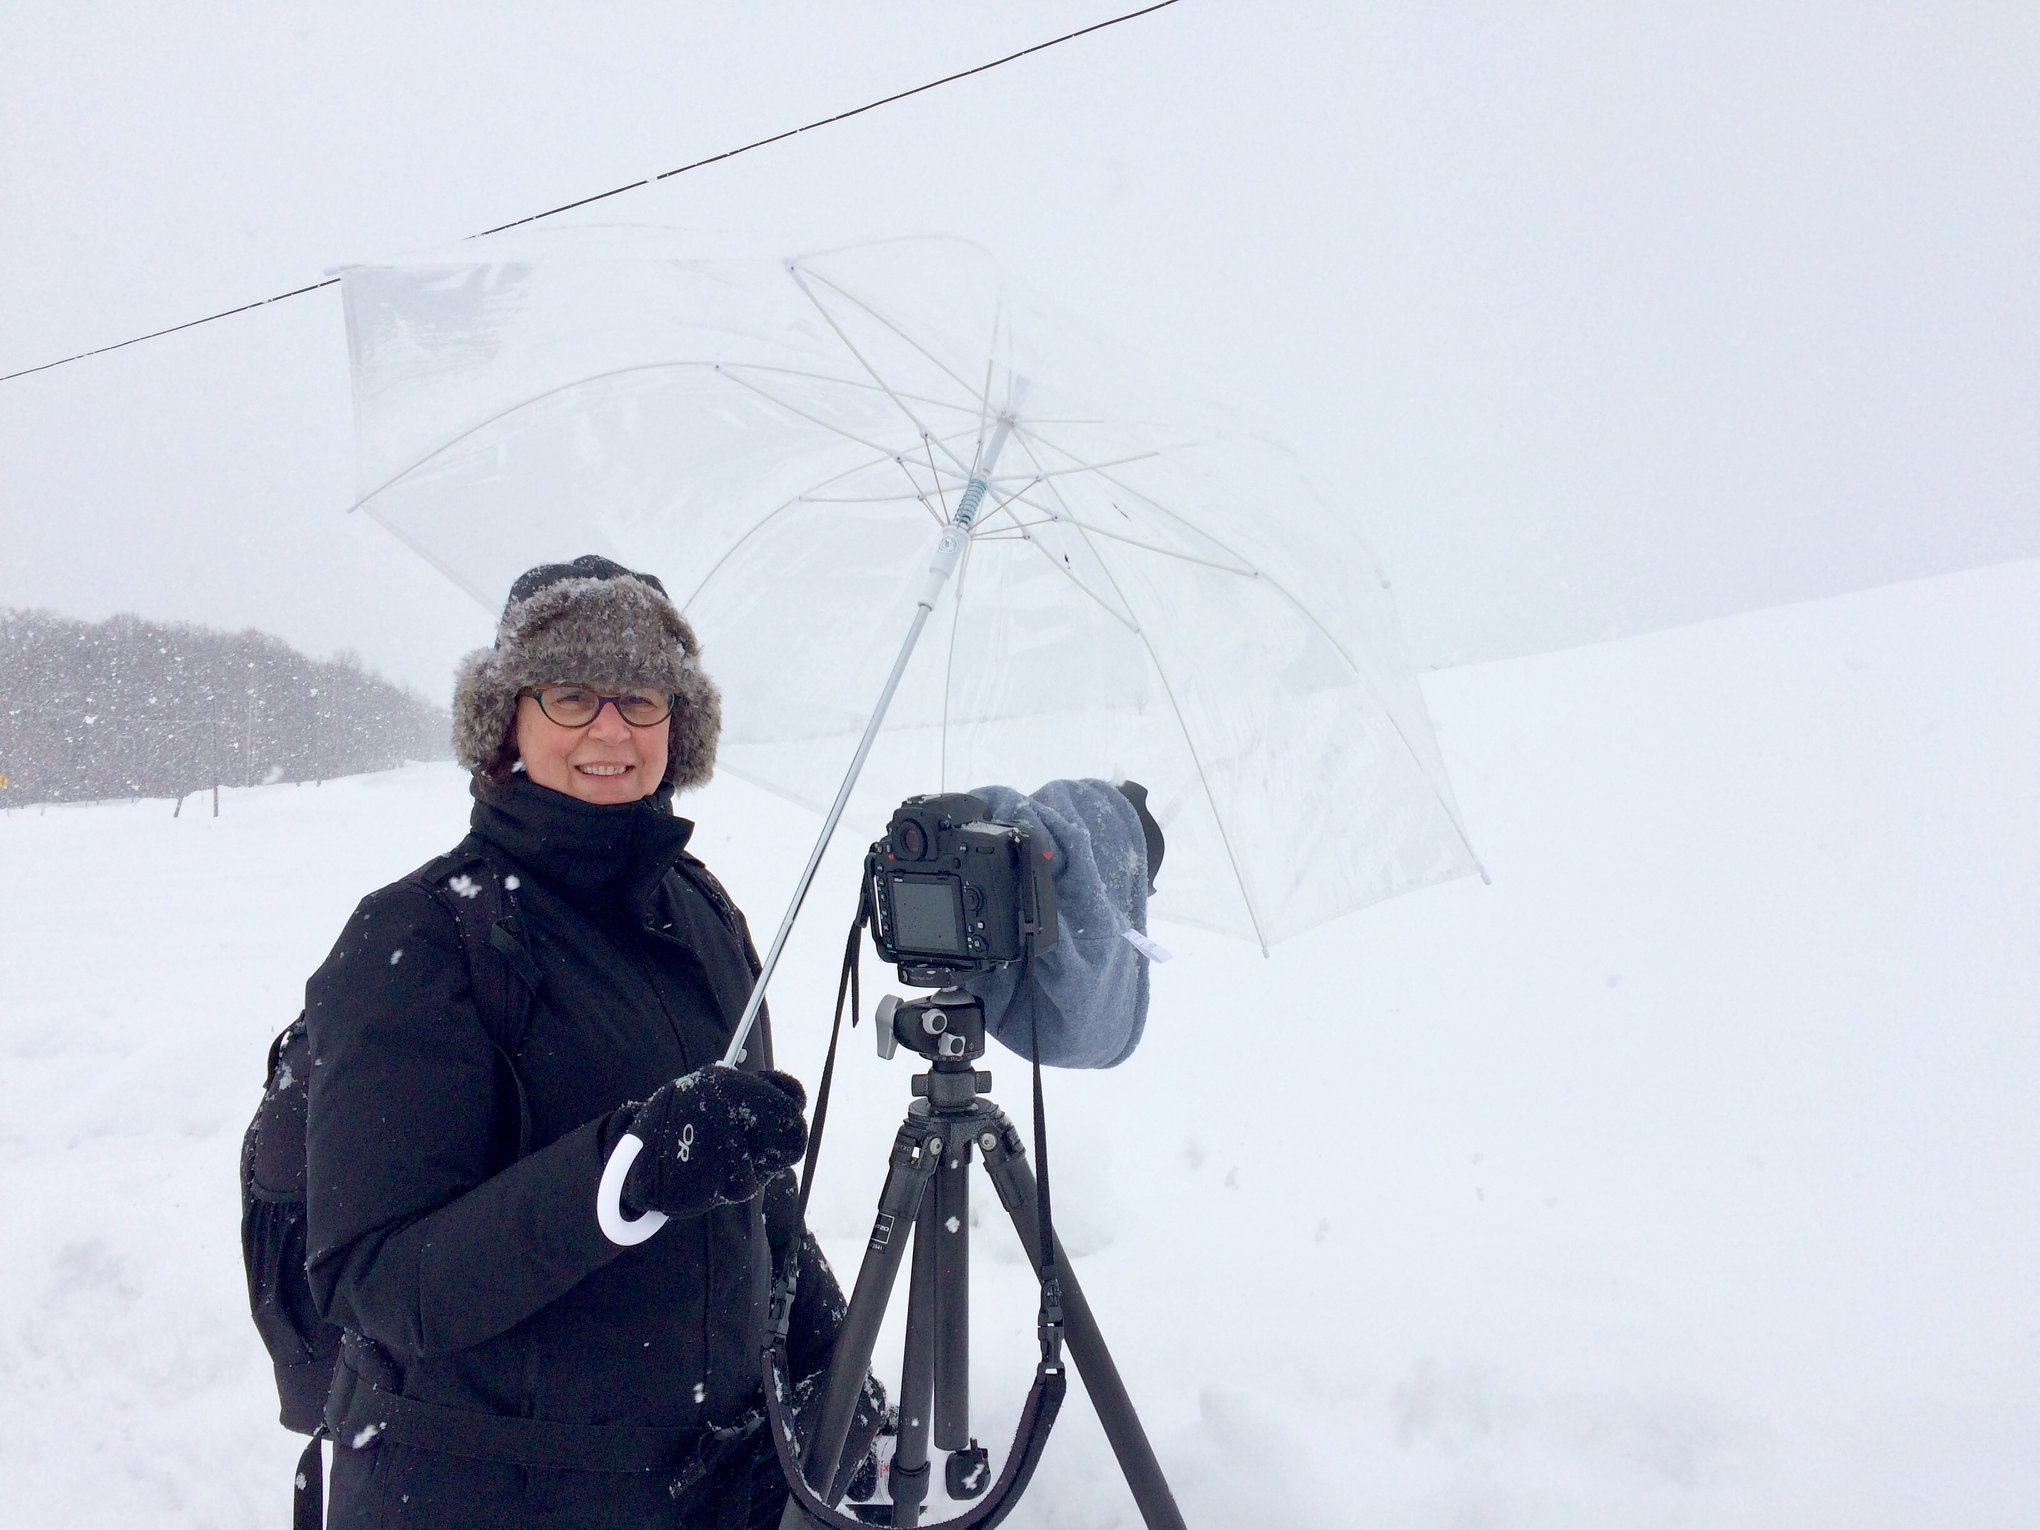 Teamwork: I am holding an umbrella over Ulana's camera in order to keep the blowing snow off her lens.